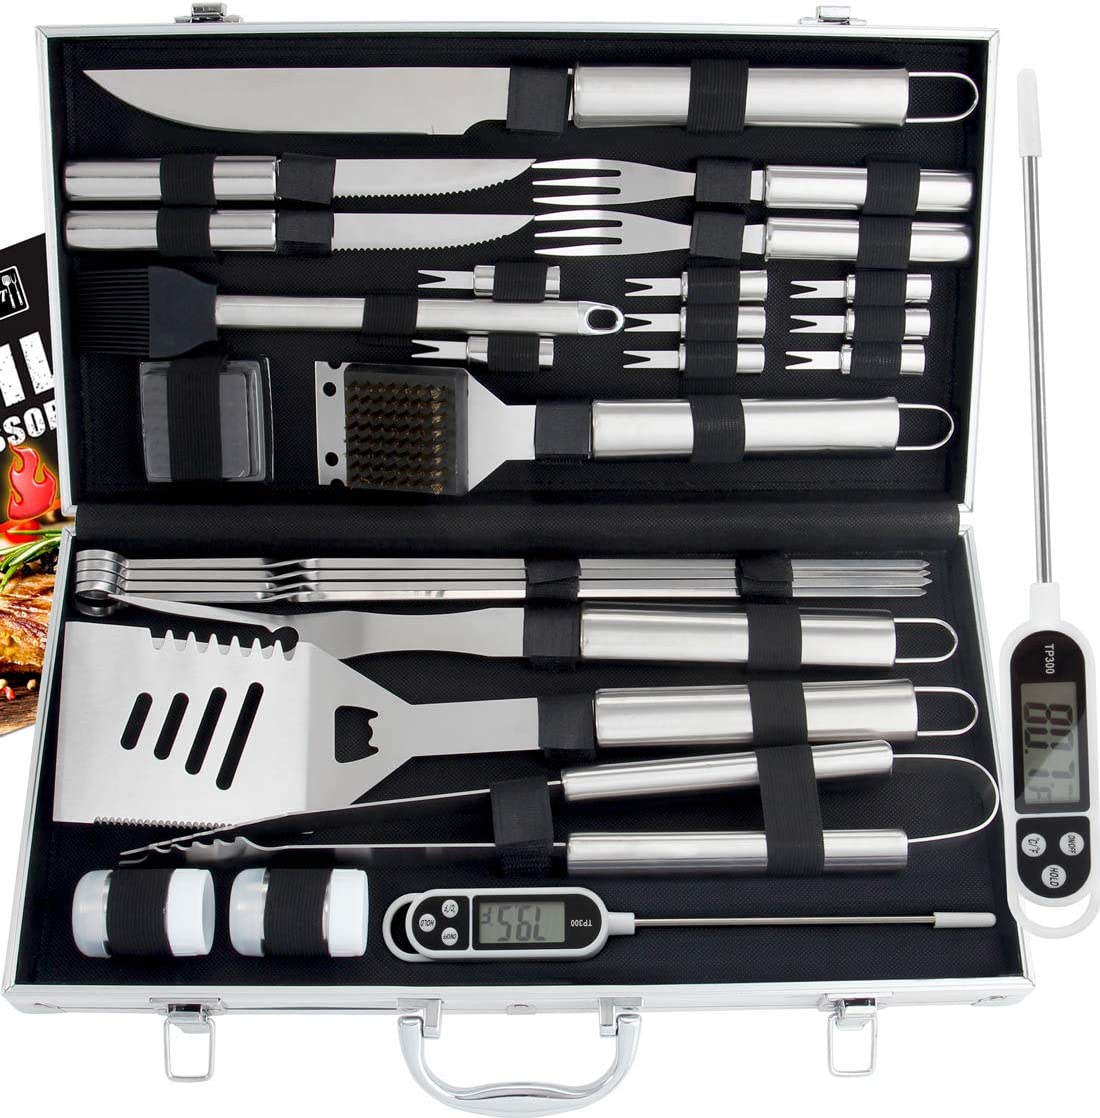 Best Grilling Accessories,Versatility in use: Romanticist 27pc BBQ Accessories Set with Thermometer